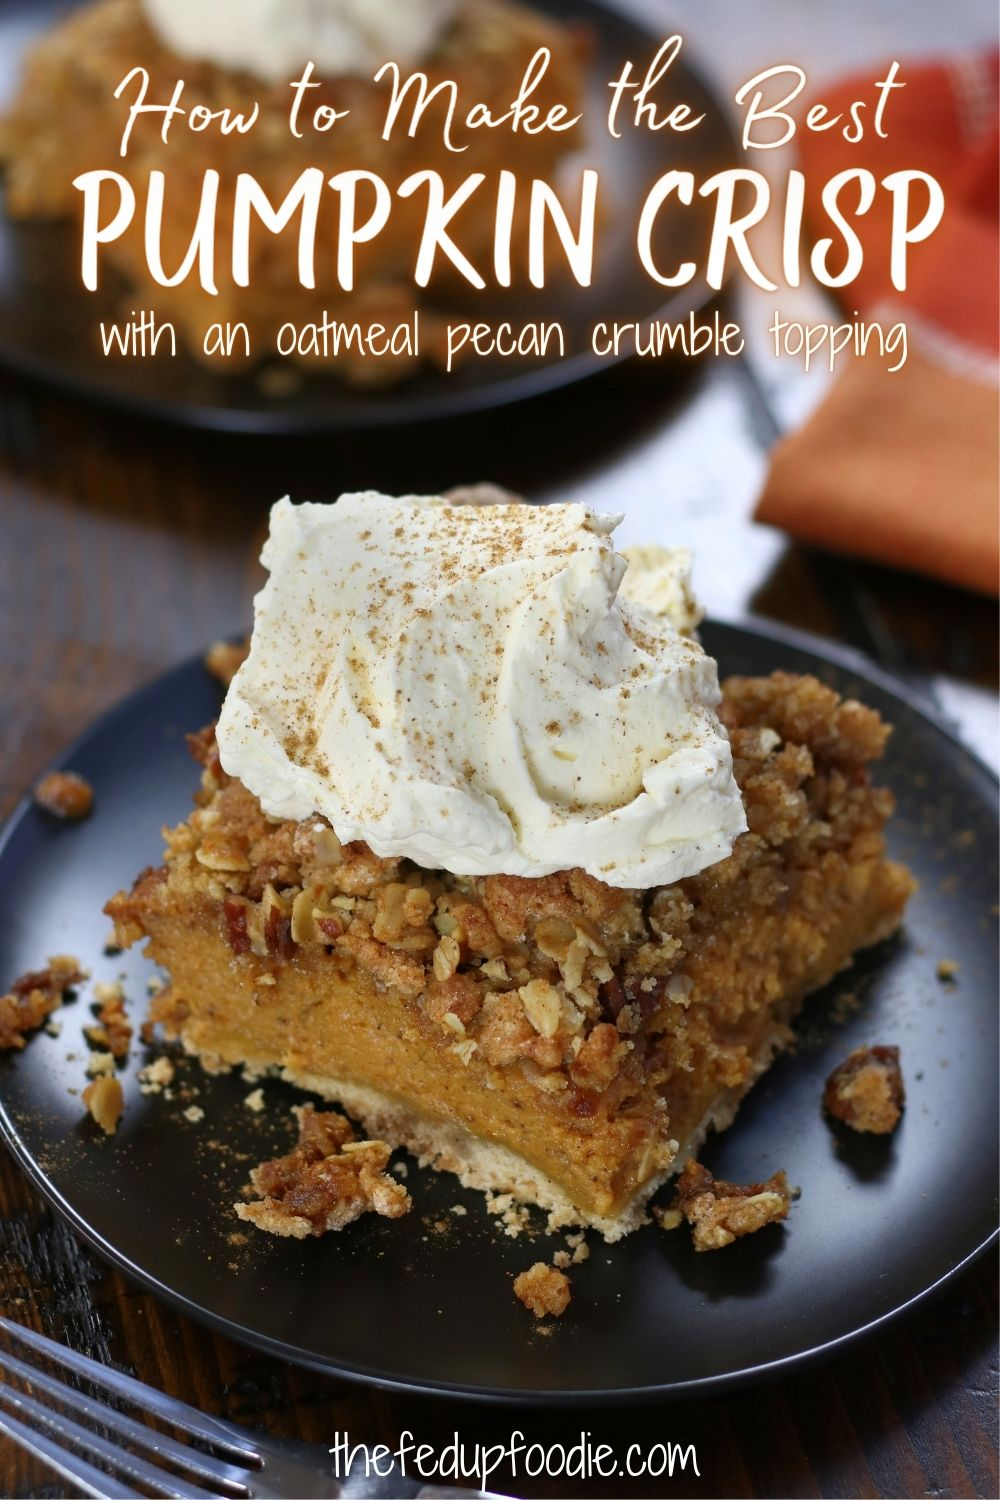 One of the easiest homemade Thanksgiving desserts, this Pumpkin Crisp is incredibly delicious. A ginger shortbread layer is topped with a rich pumpkin filling and then an oatmeal pecan crumble topping. #PumpkinRecipes #PumpkinCrisp #PumpkinCrispRecipeEasy #BestPumpkinDesserts #CannedPumpkinRecipesEasy #BestPumpkinCrispRecipe #PumpkinCrispDessert #PumpkinOatCrisp #PumpkinCrispWithOats #PumpkinCrispWithPecans